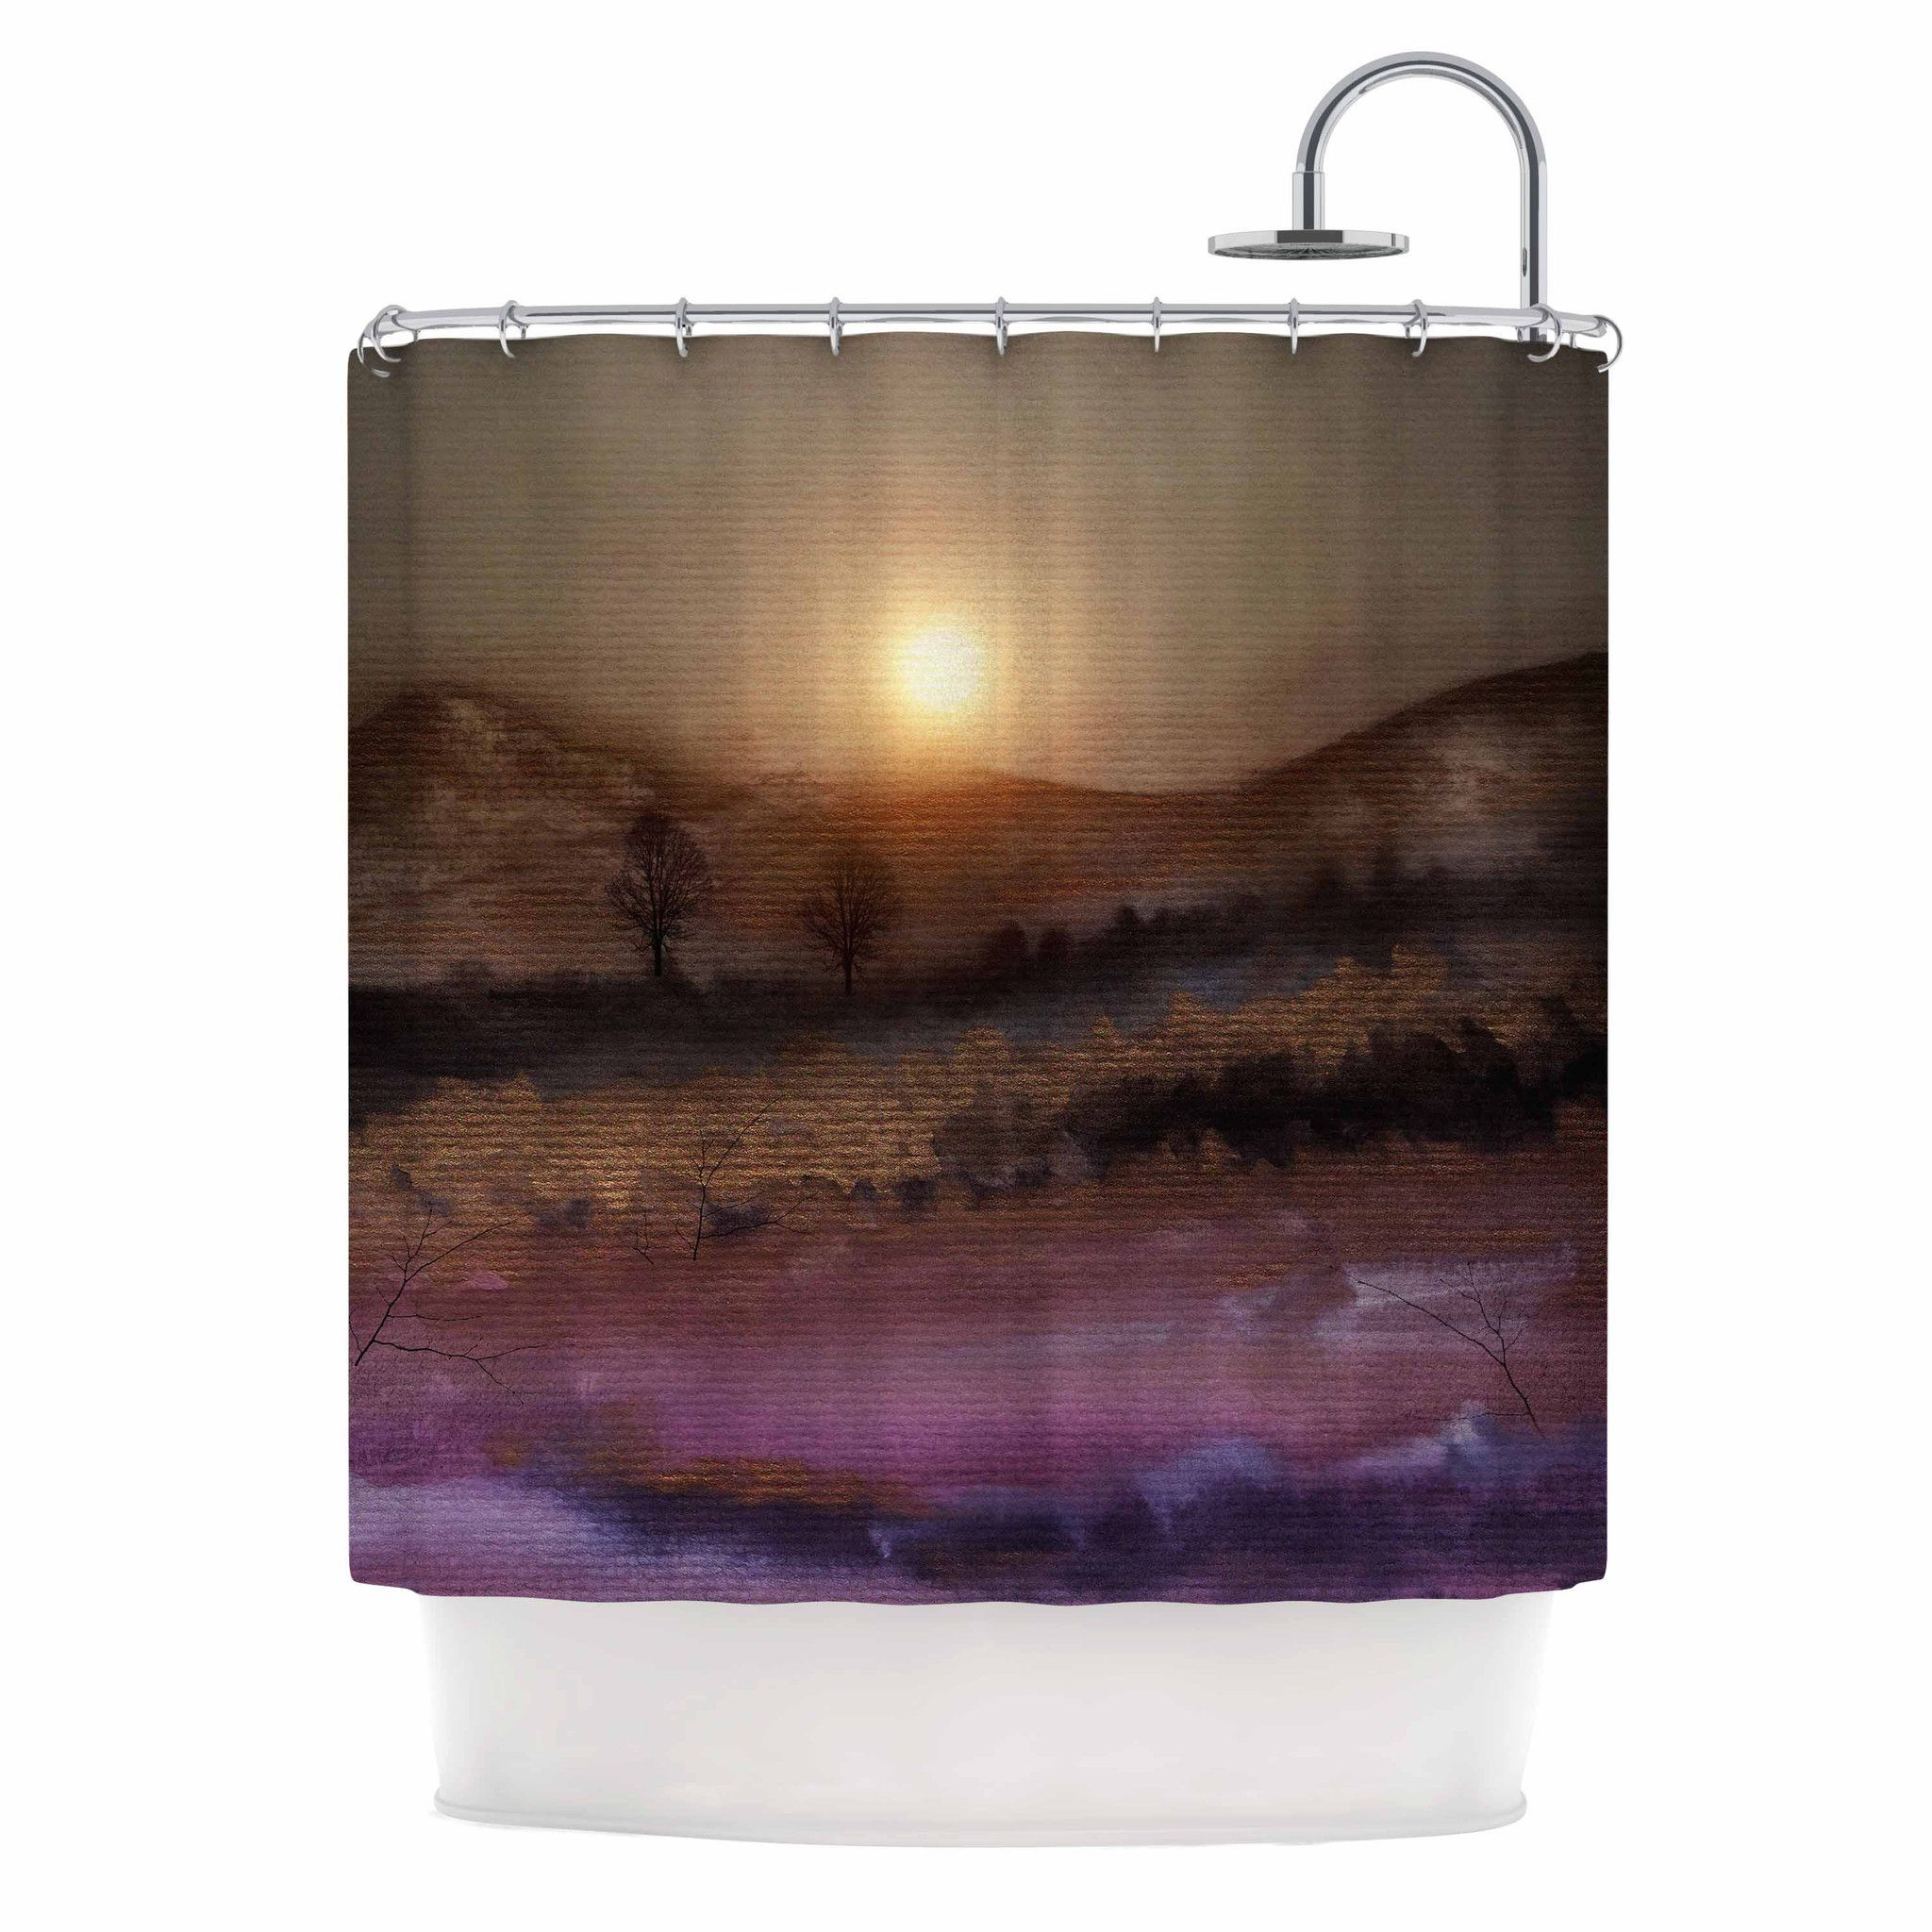 Viviana Gonzalez Calling The Sun V Purple Brown Shower Curtain